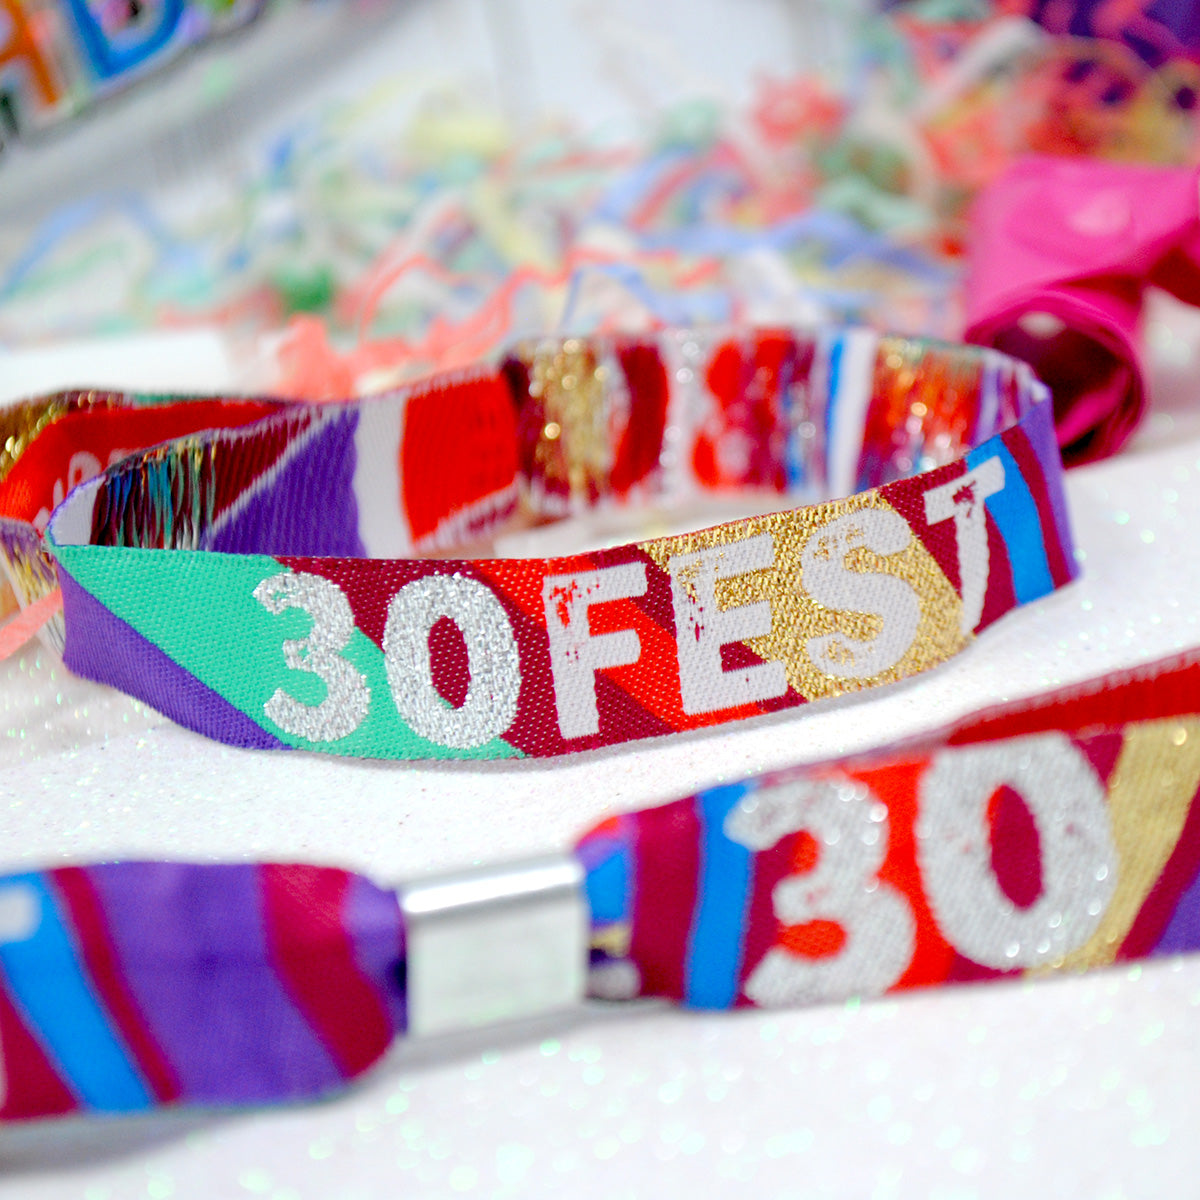 30FEST 30th Birthday Party Festival Wristbands